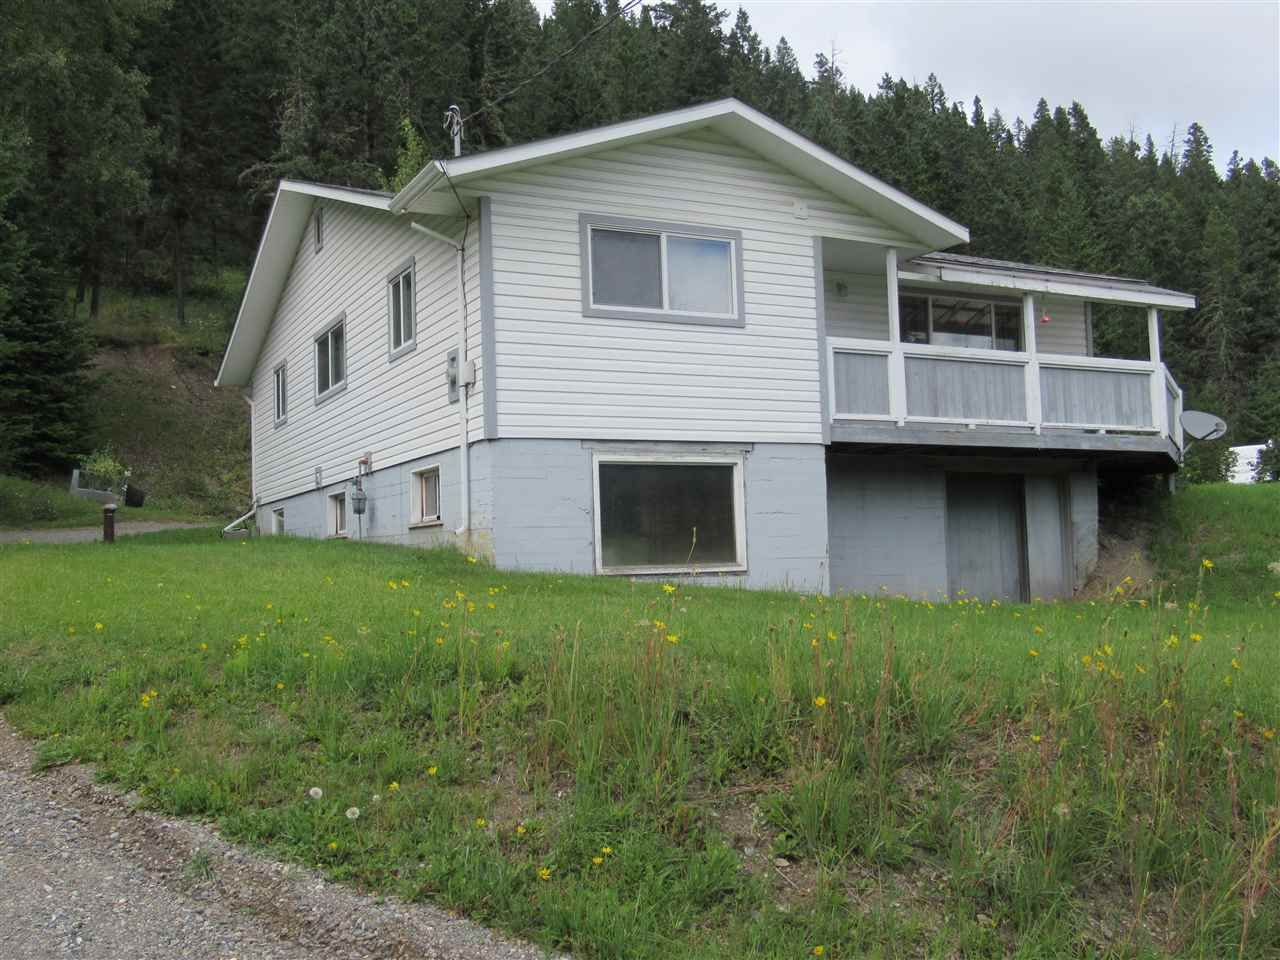 Main Photo: 3035 FIRDALE Drive in Williams Lake: Williams Lake - Rural North House for sale (Williams Lake (Zone 27))  : MLS®# R2484738